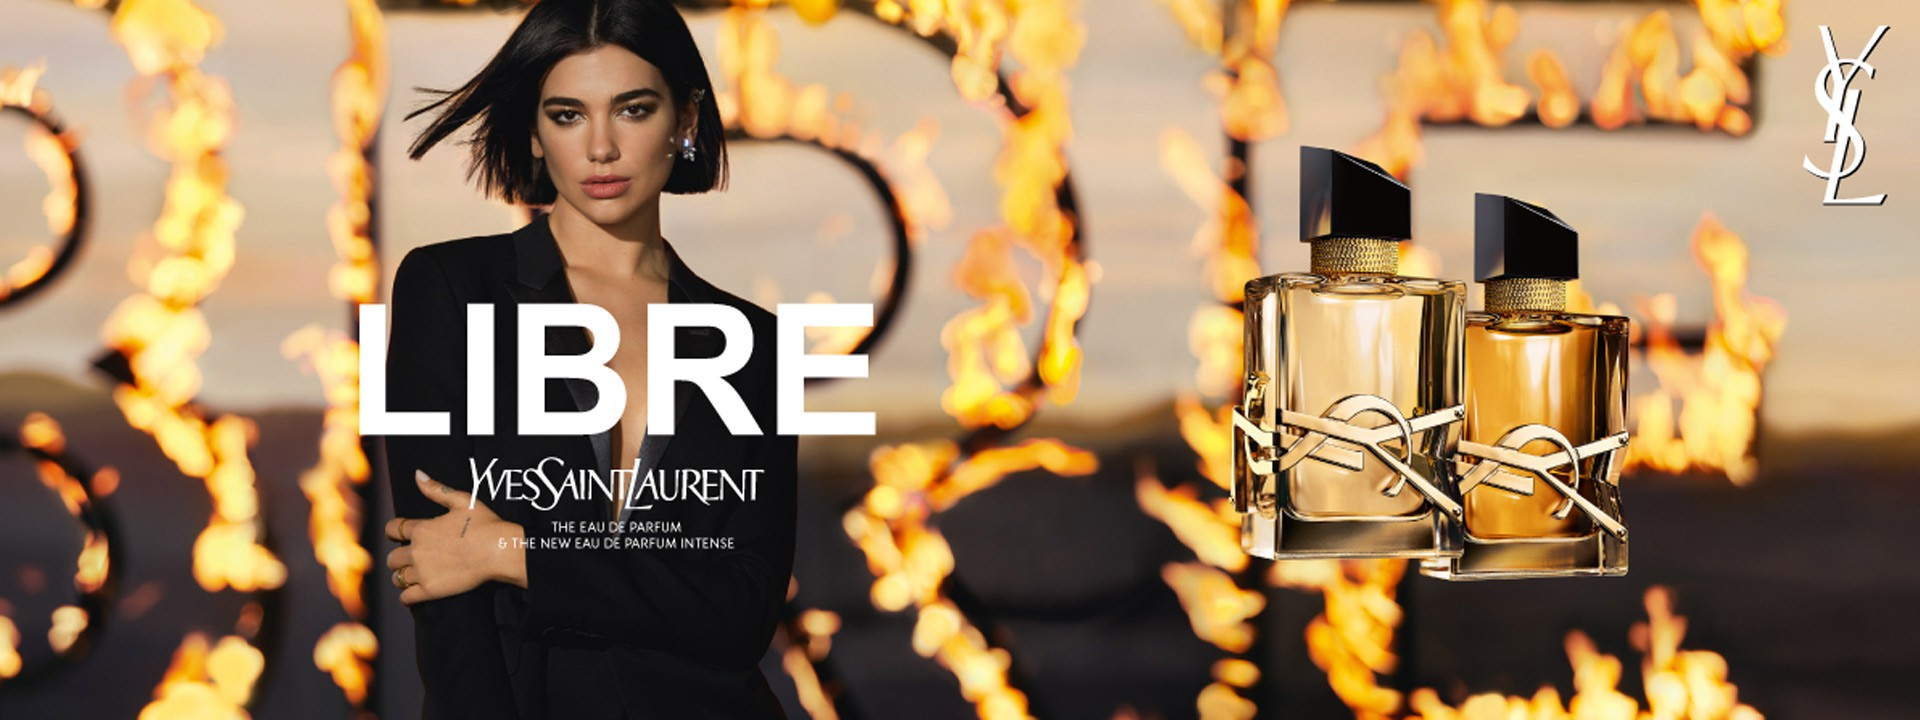 Libre Yves Saint Laurent